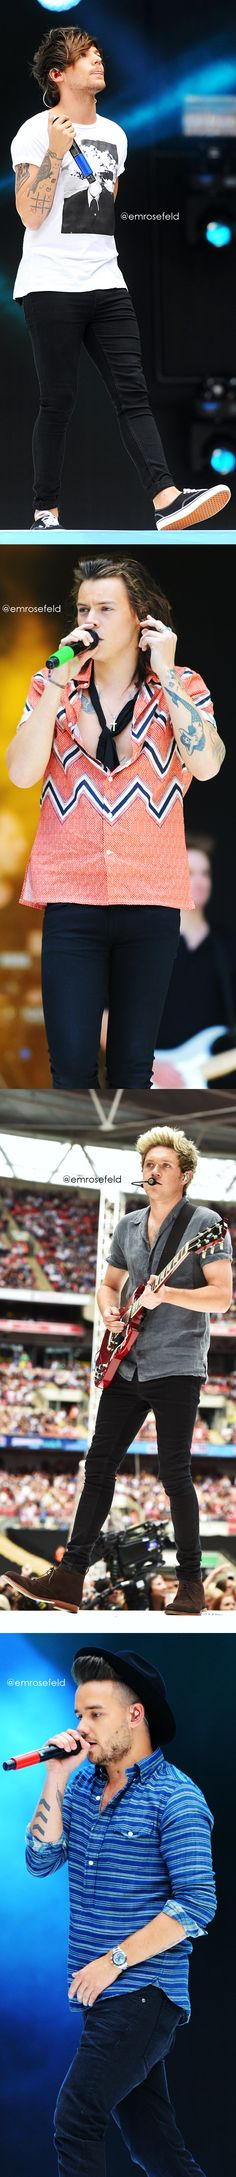 One Direction | at Capital FM's Summertime Ball 6.6.15